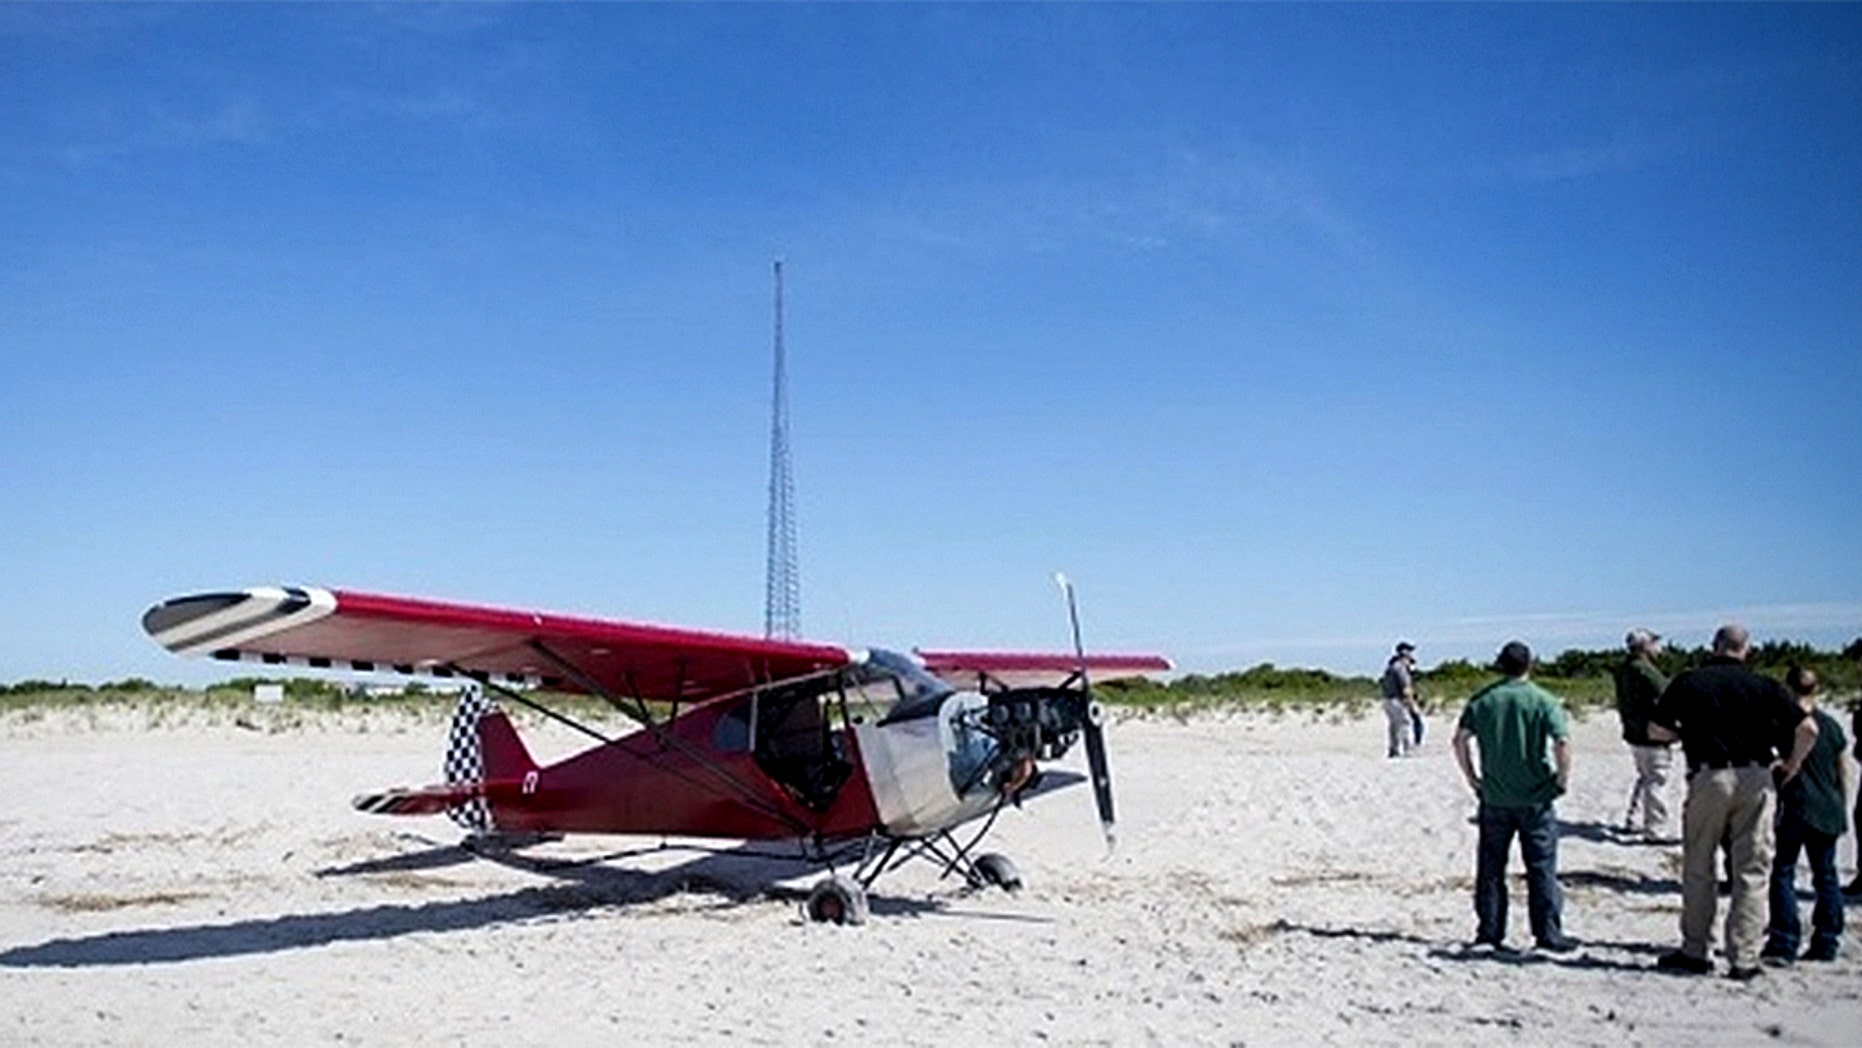 Authorities are searching for the pilot of a single-engine plane that illegally landed on a Coast Guard beach in New Jersey.